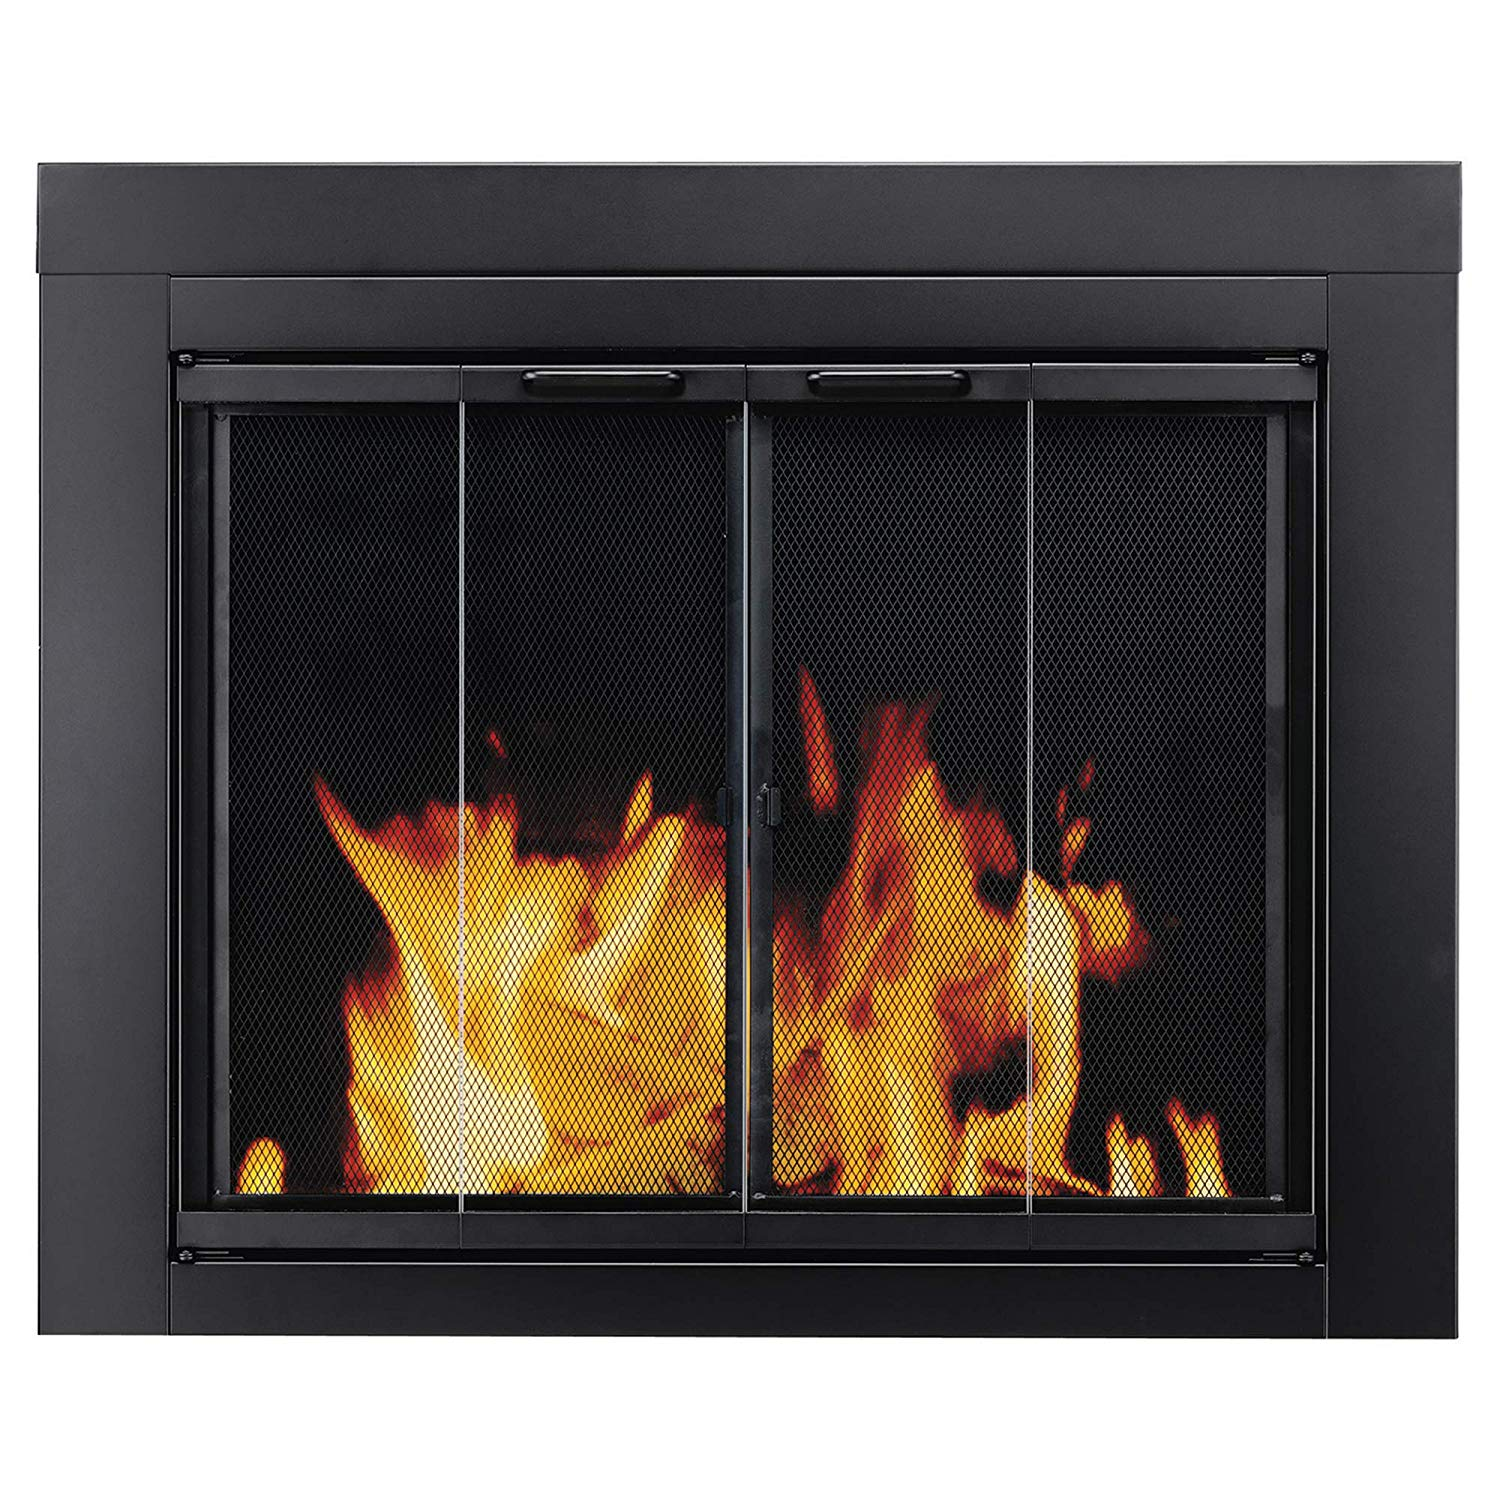 Cast Iron Fireplace tools Best Of Pleasant Hearth at 1000 ascot Fireplace Glass Door Black Small